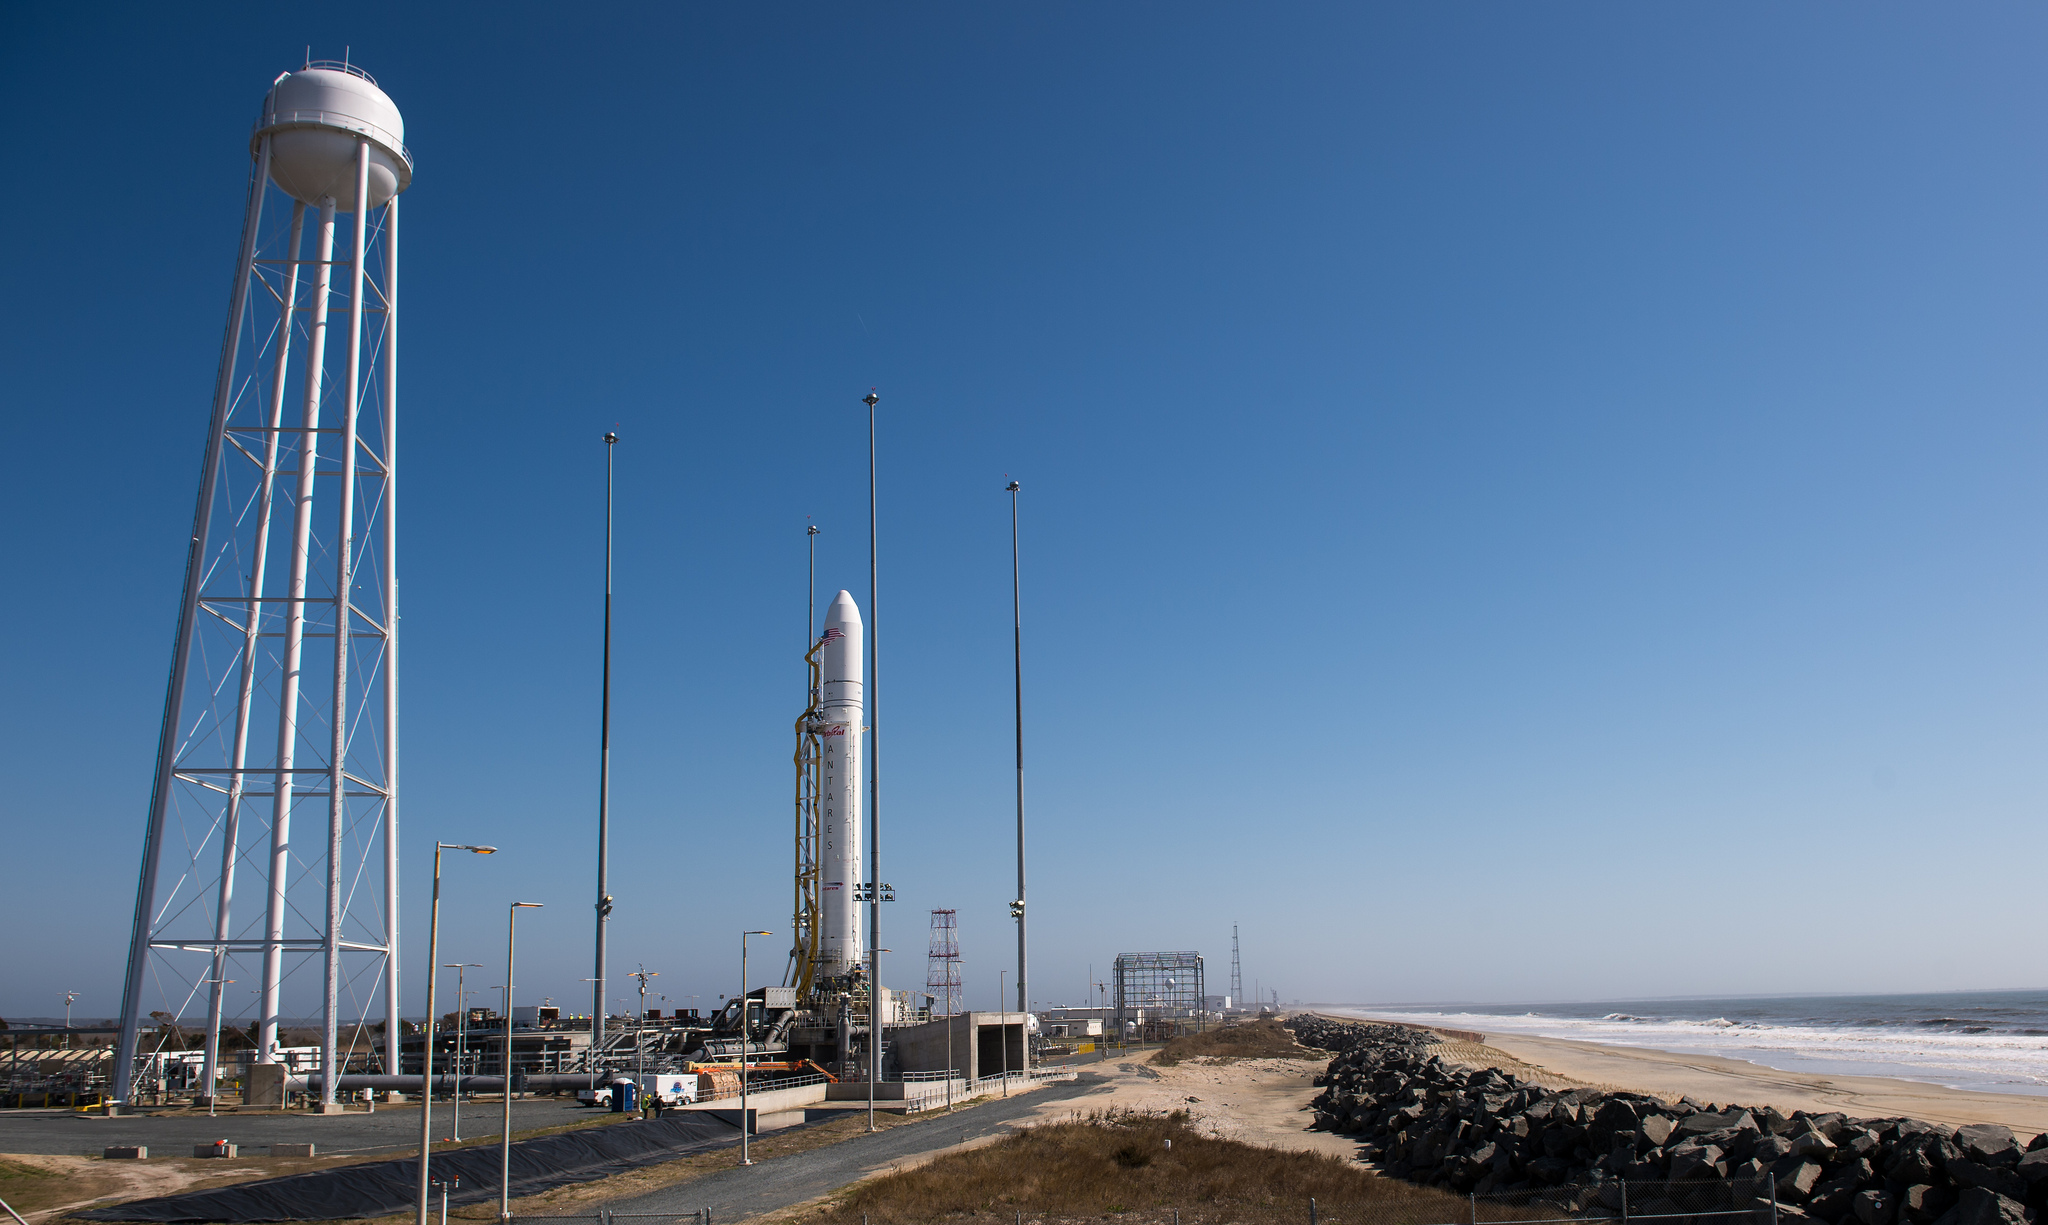 New Private Rocket Antares: 5 Surprising Facts